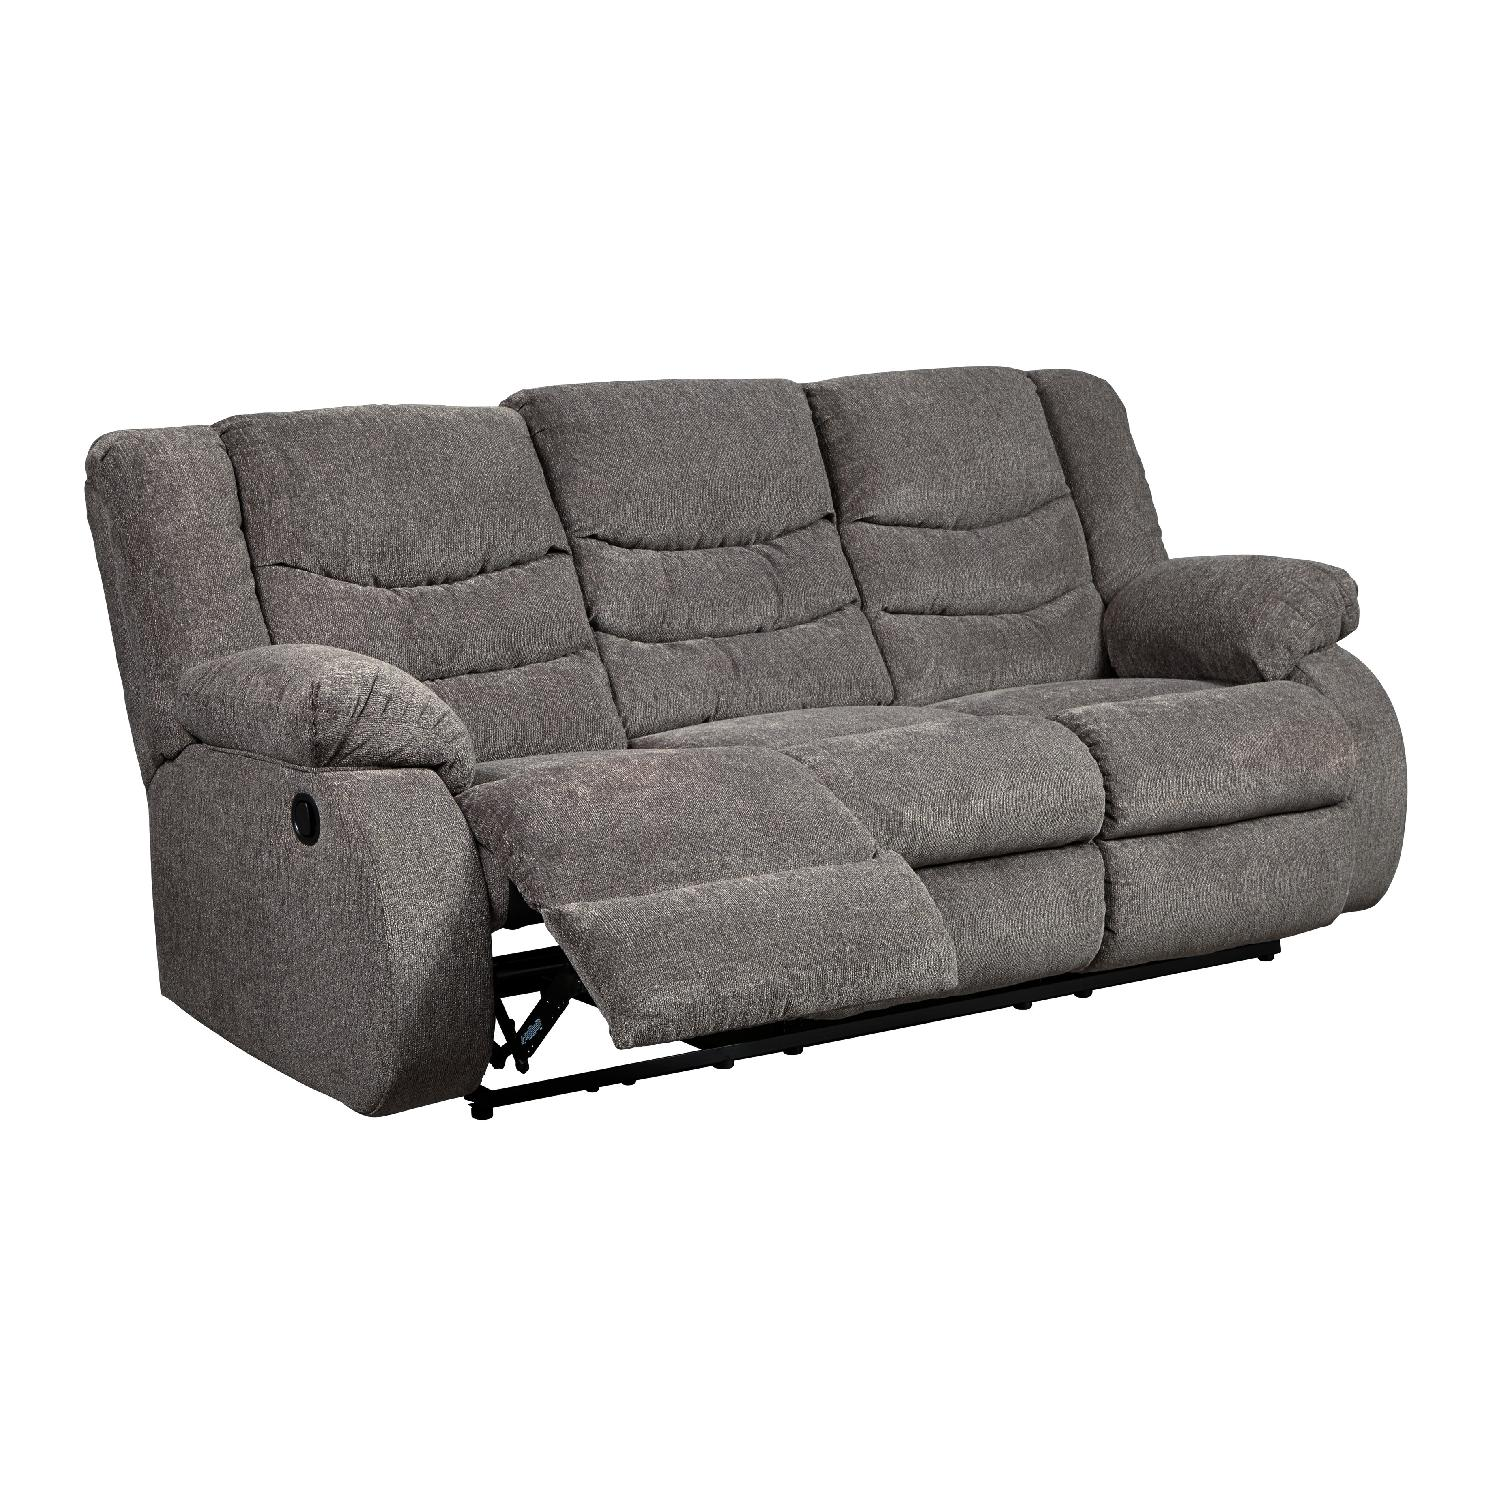 Ashley s Tulen Contemporary Reclining Sofa in Fabric AptDeco